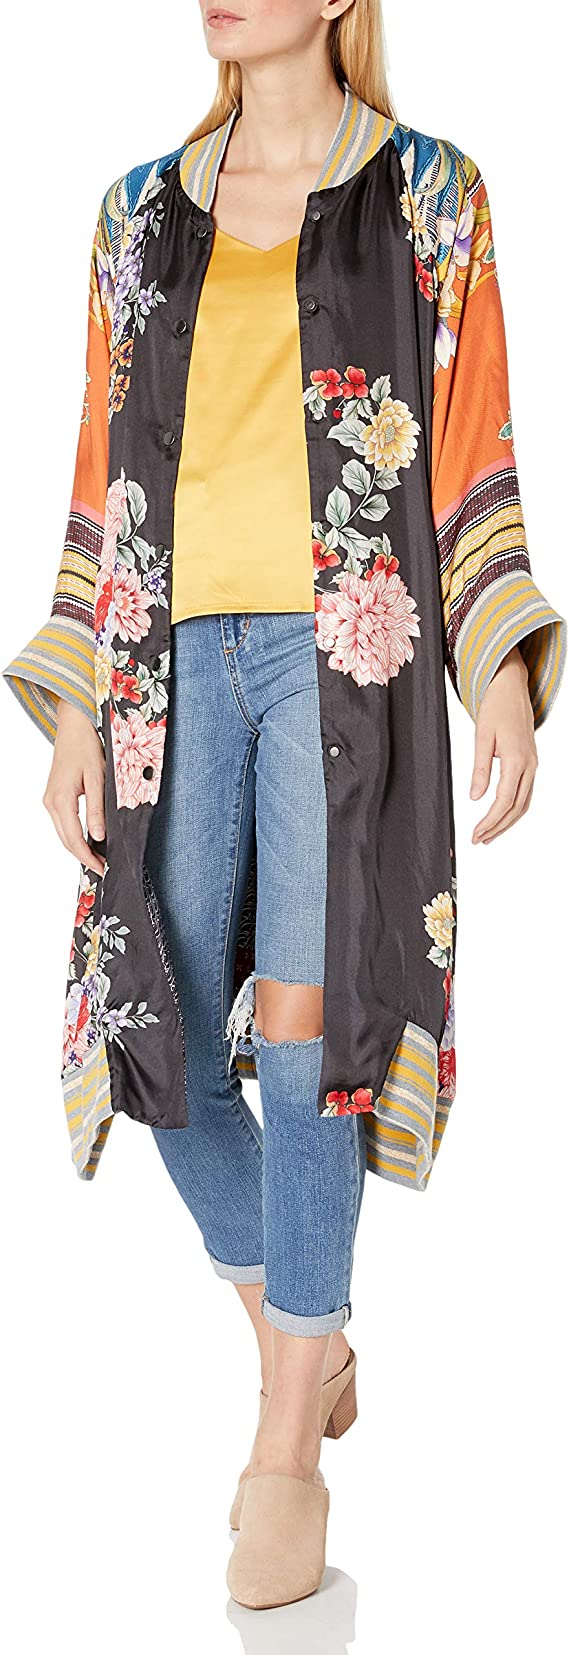 Johnny Was Women's Printed Long Sleeve Fashion Jacket